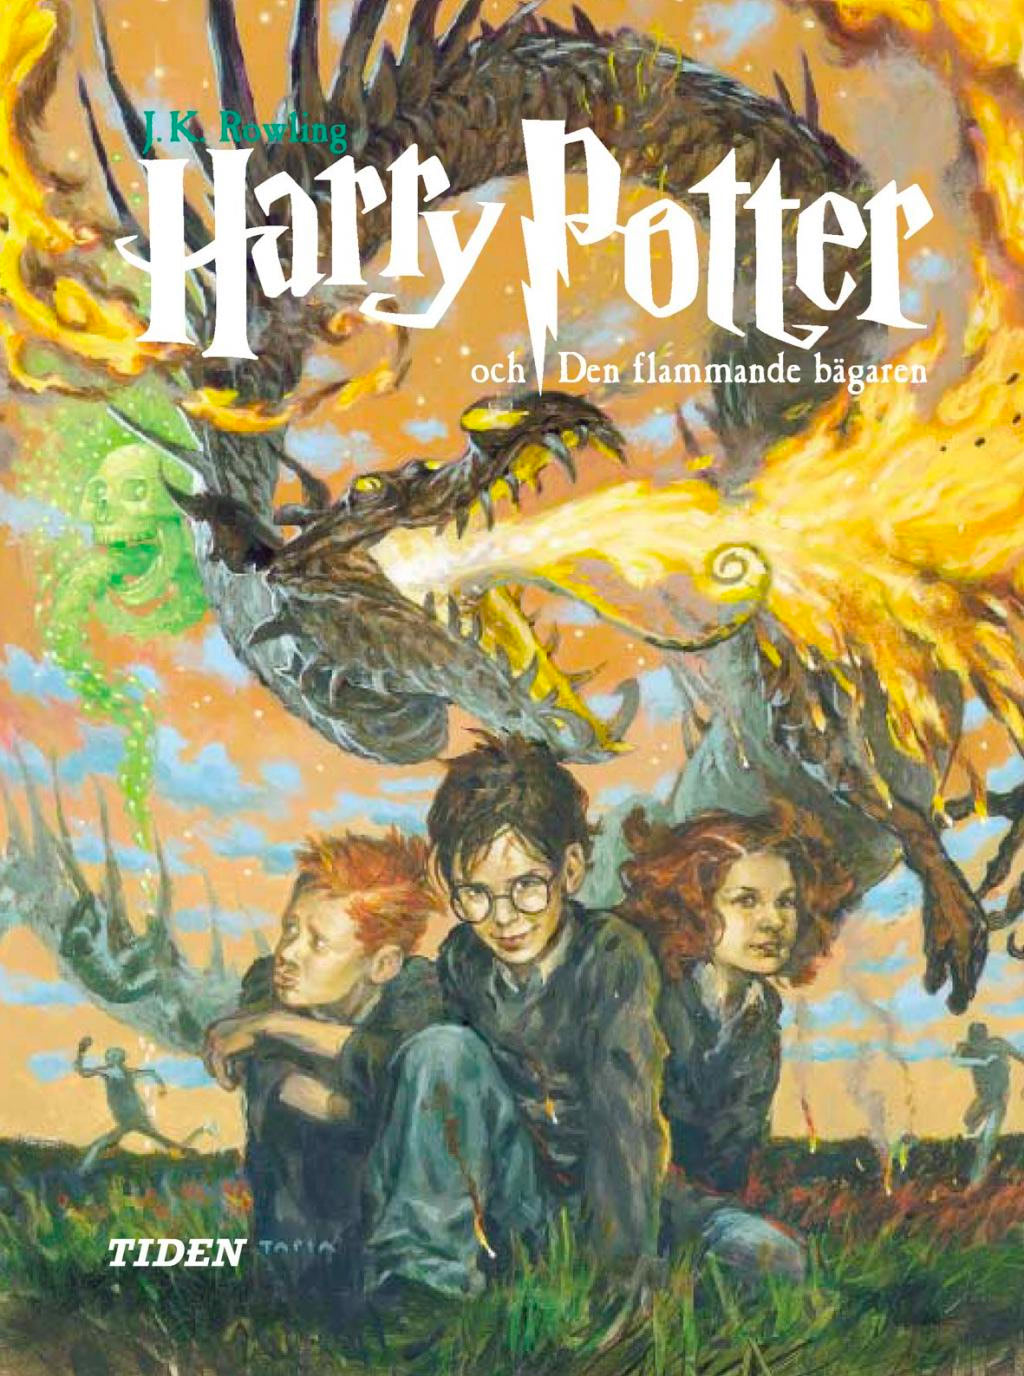 'Goblet of Fire' Swedish edition